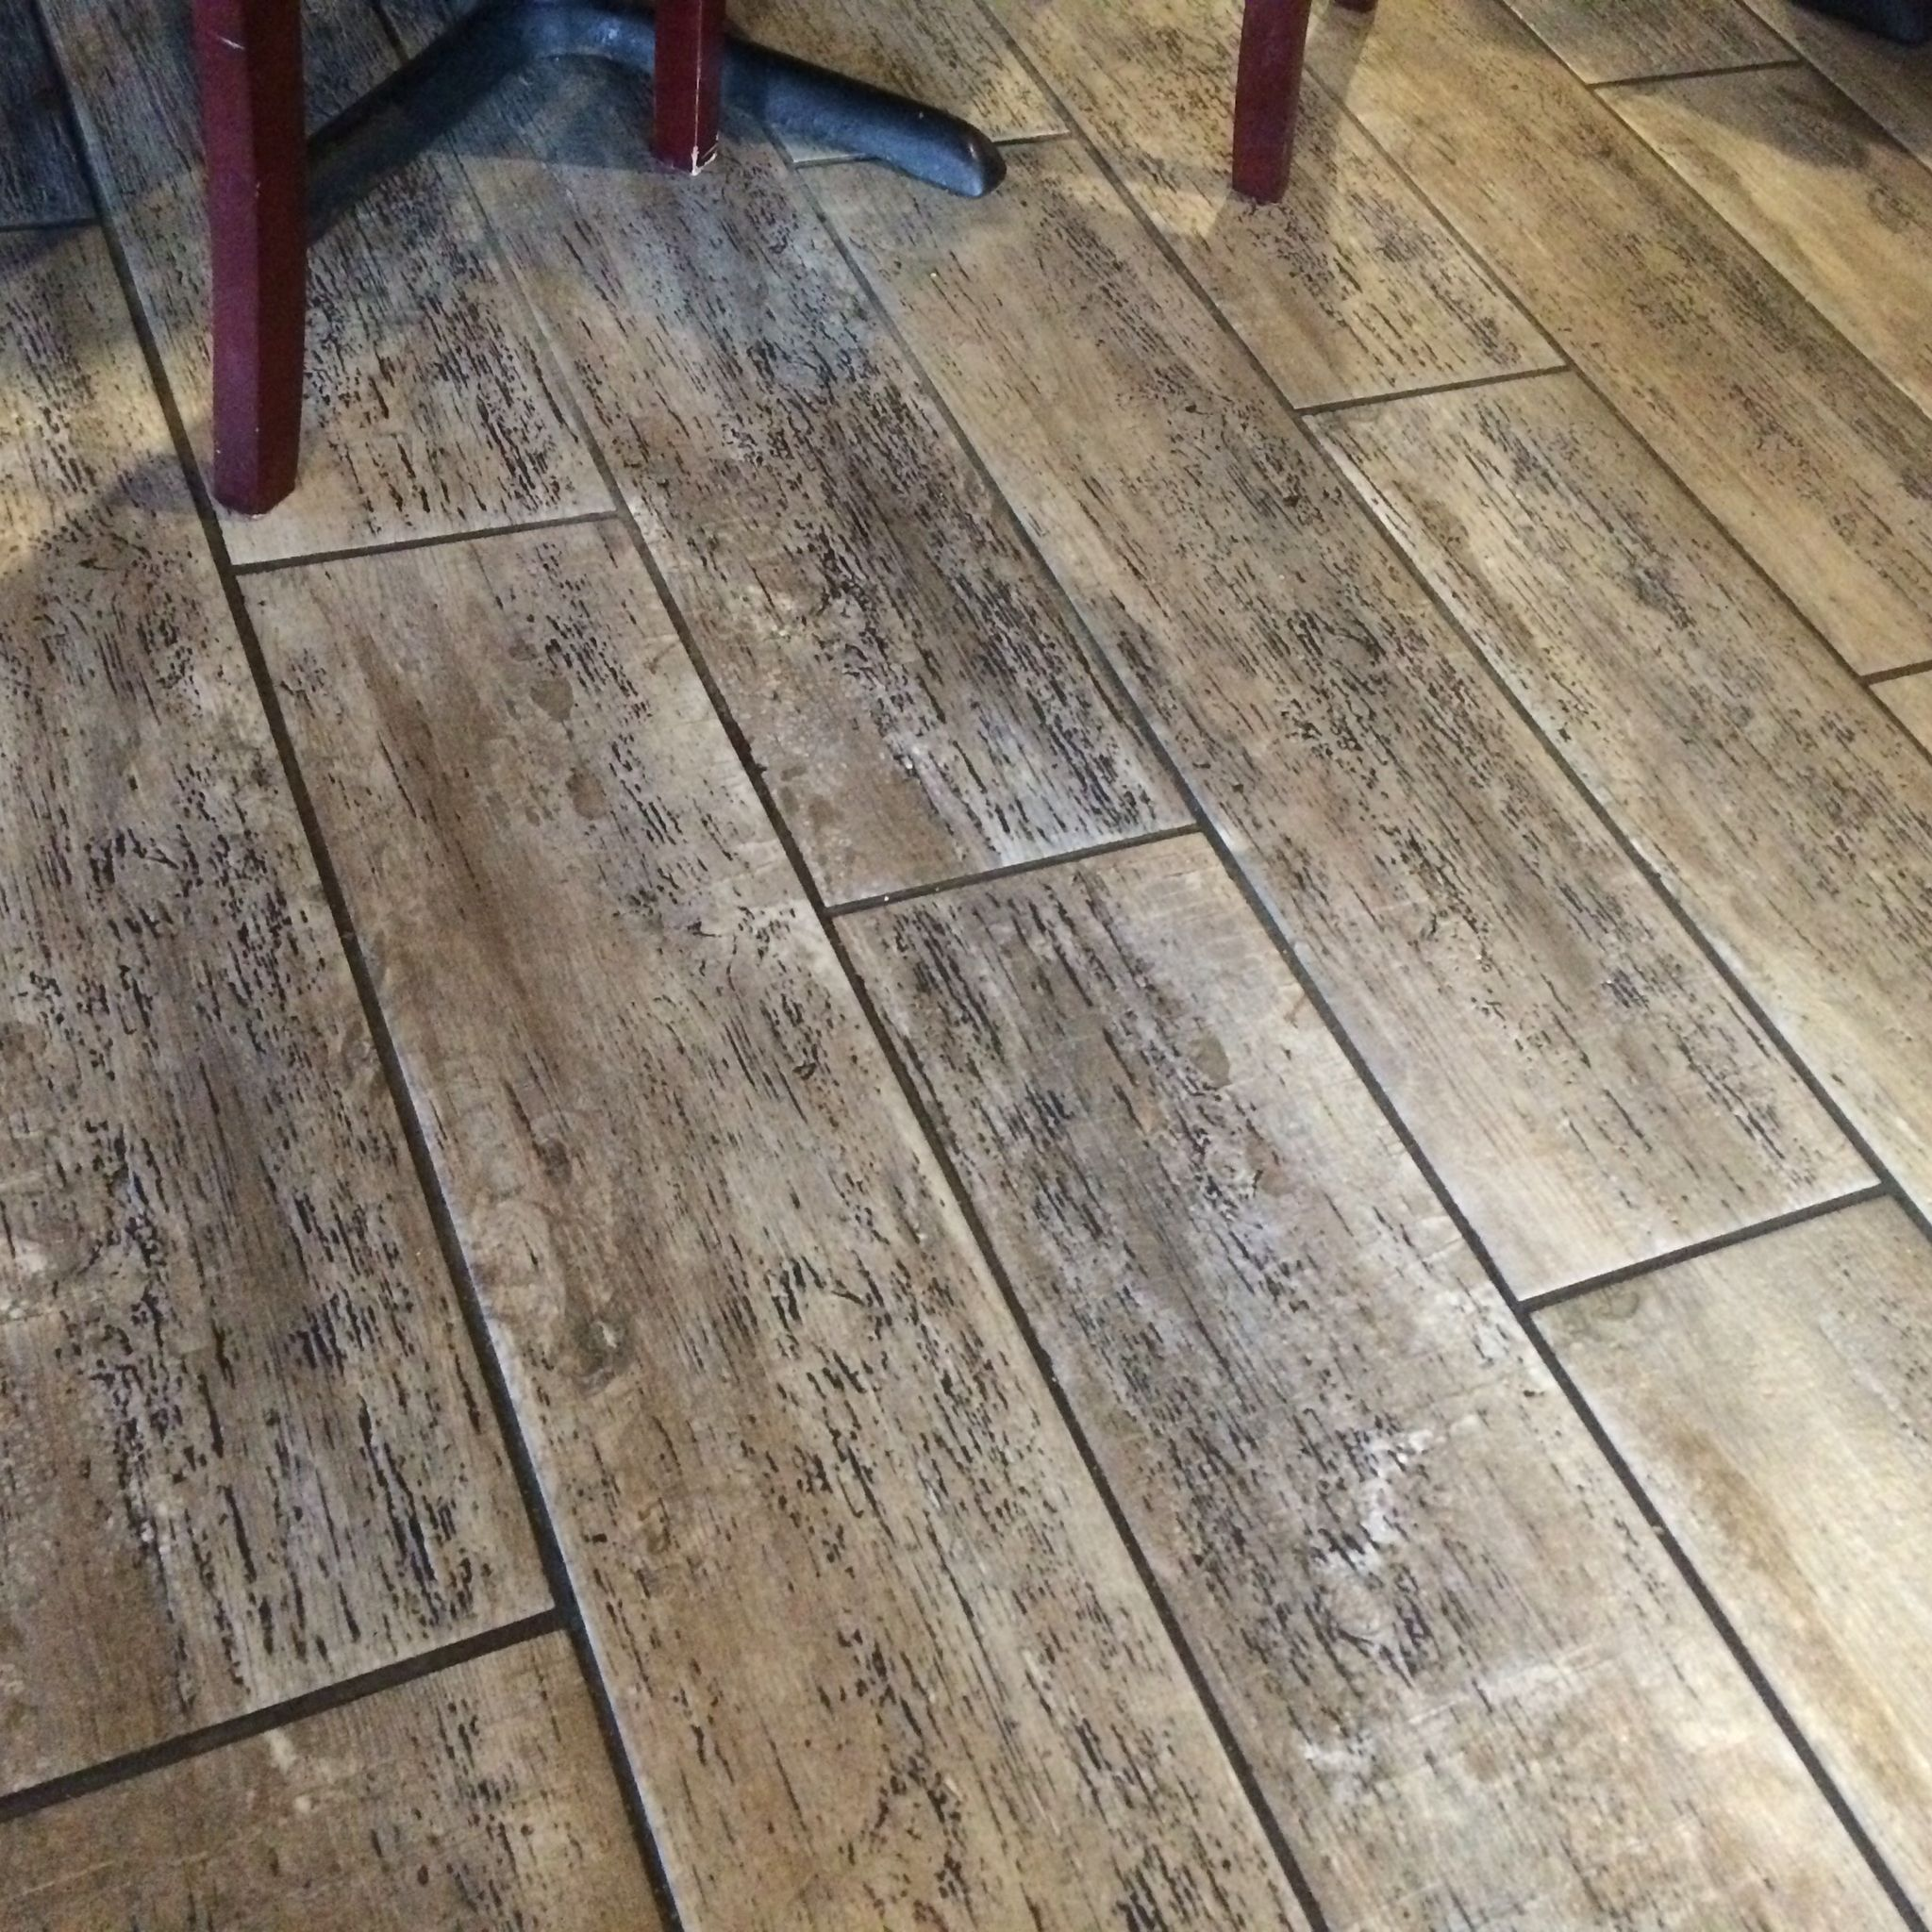 I Love This Floor It S Tile That Looks Like Wood I Bet It Wears